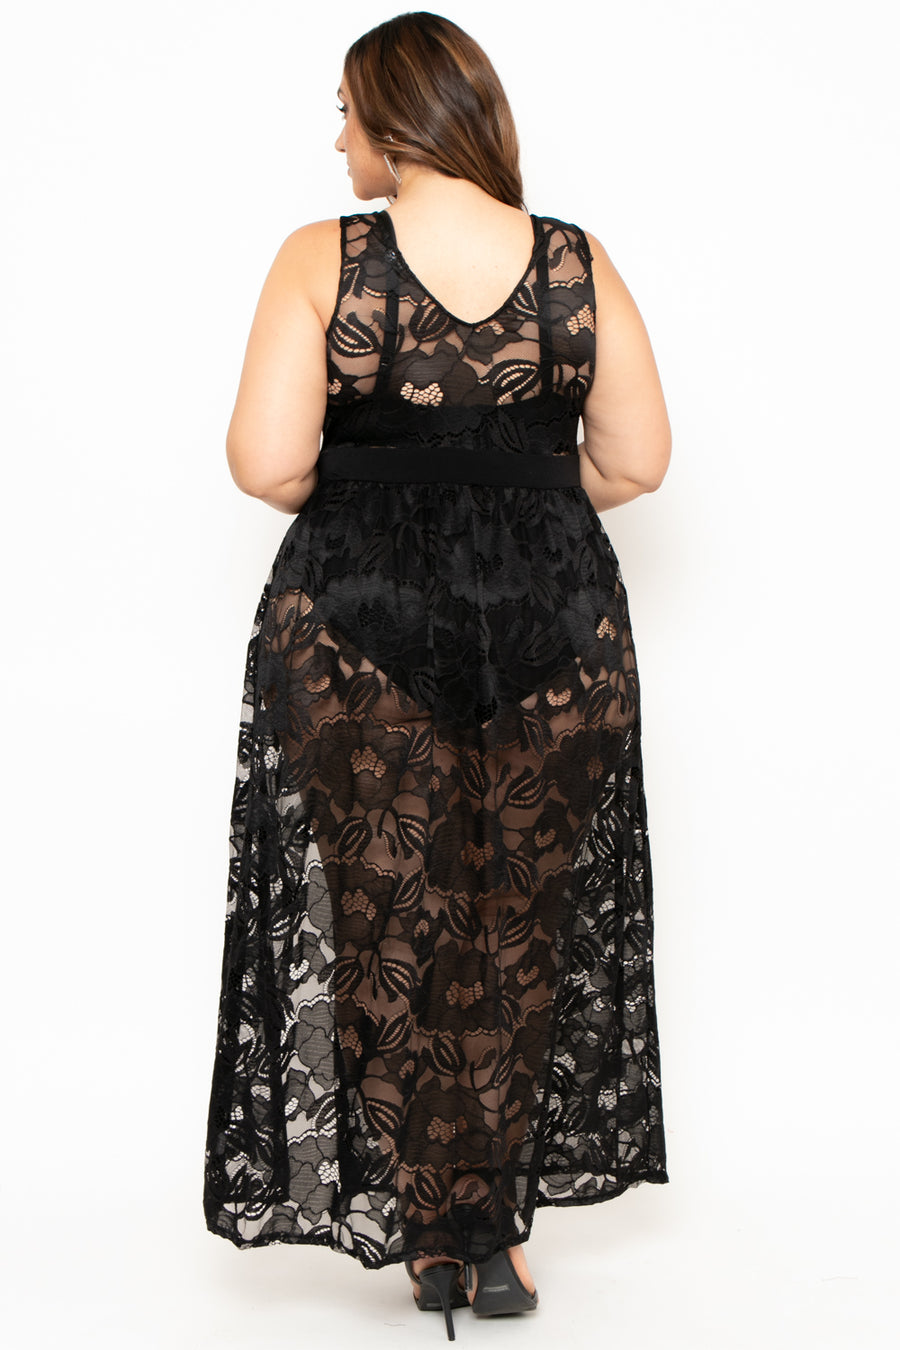 Plus Size Alexandra Lace Maxi Dress - Black